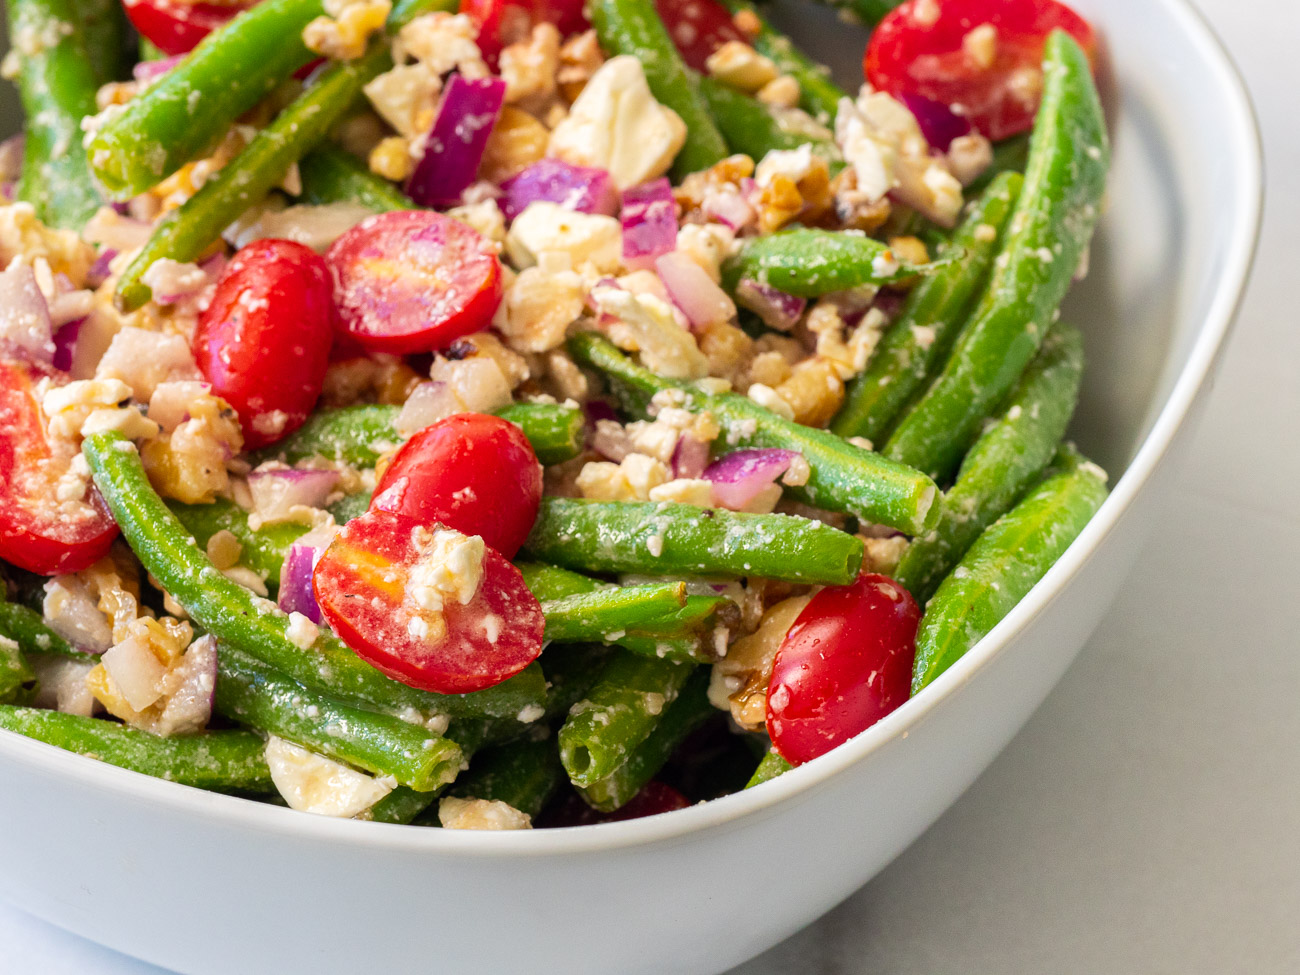 Green beans, cherry tomatoes, feta, and walnuts in a bowl with vinaigrette